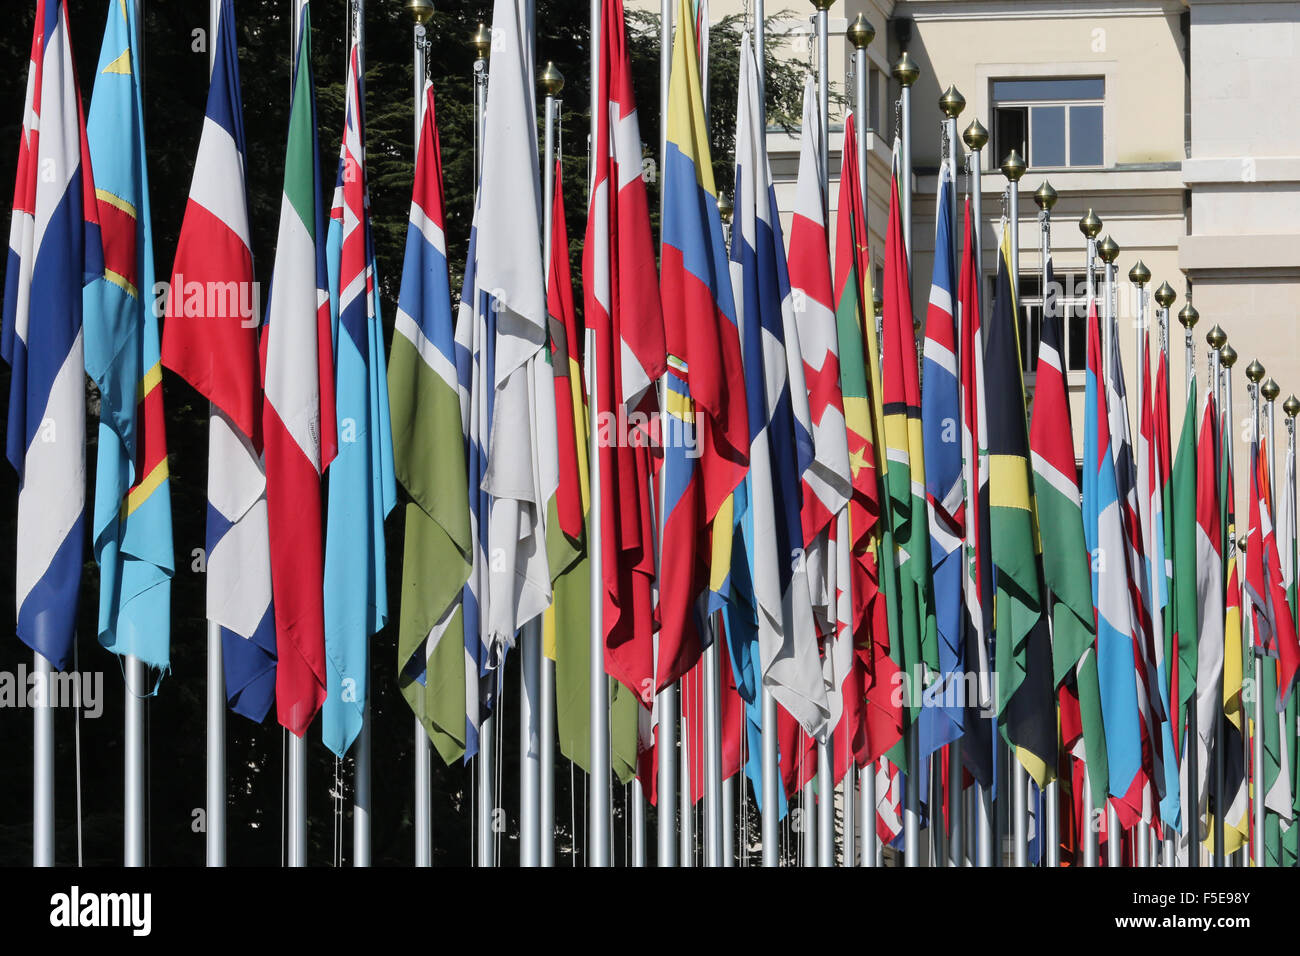 The flag lined approach to the entrance to the United Nations' Headquarters in Geneva, Switzerland, Europe - Stock Image